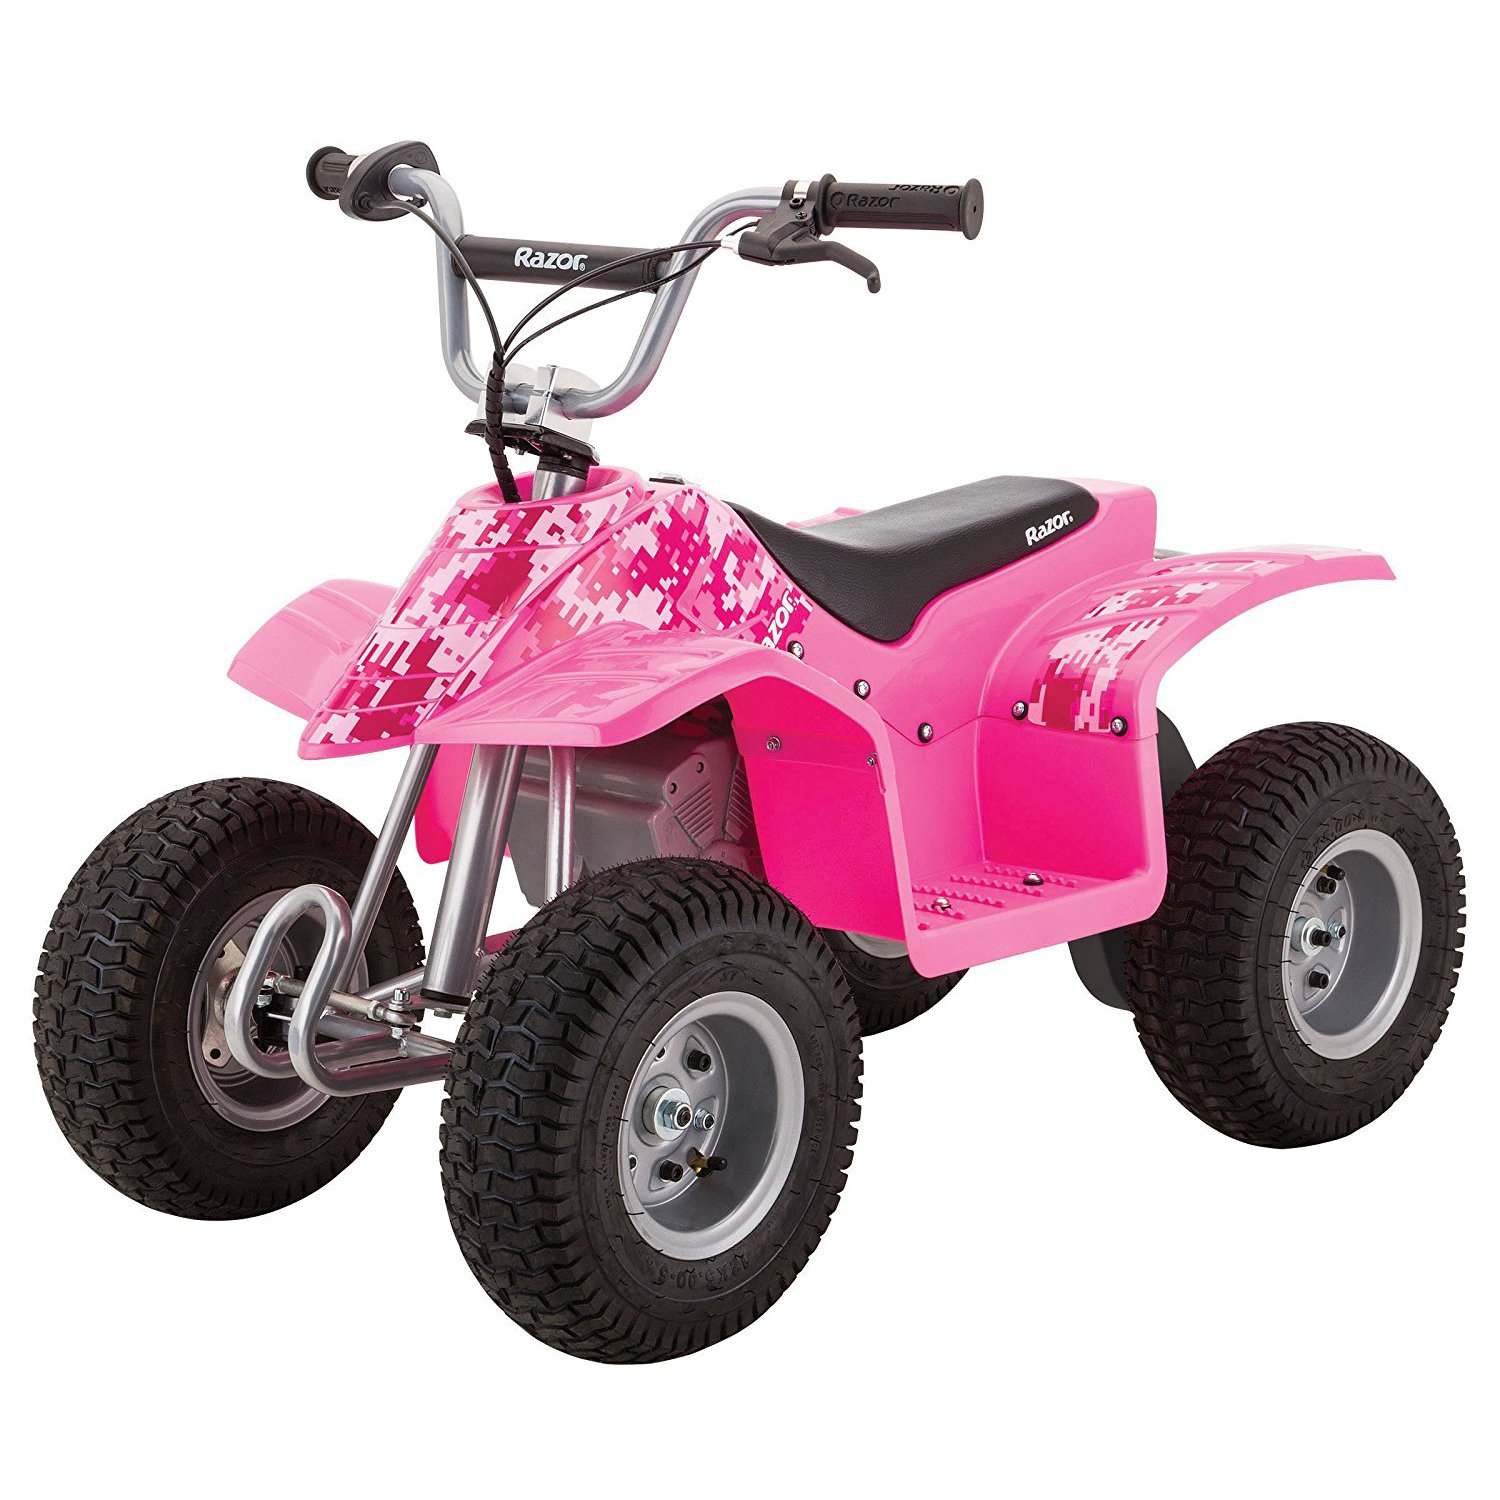 Razor 24-Volt Electric Dirt Quad Ride On - For Ages 8 and Up